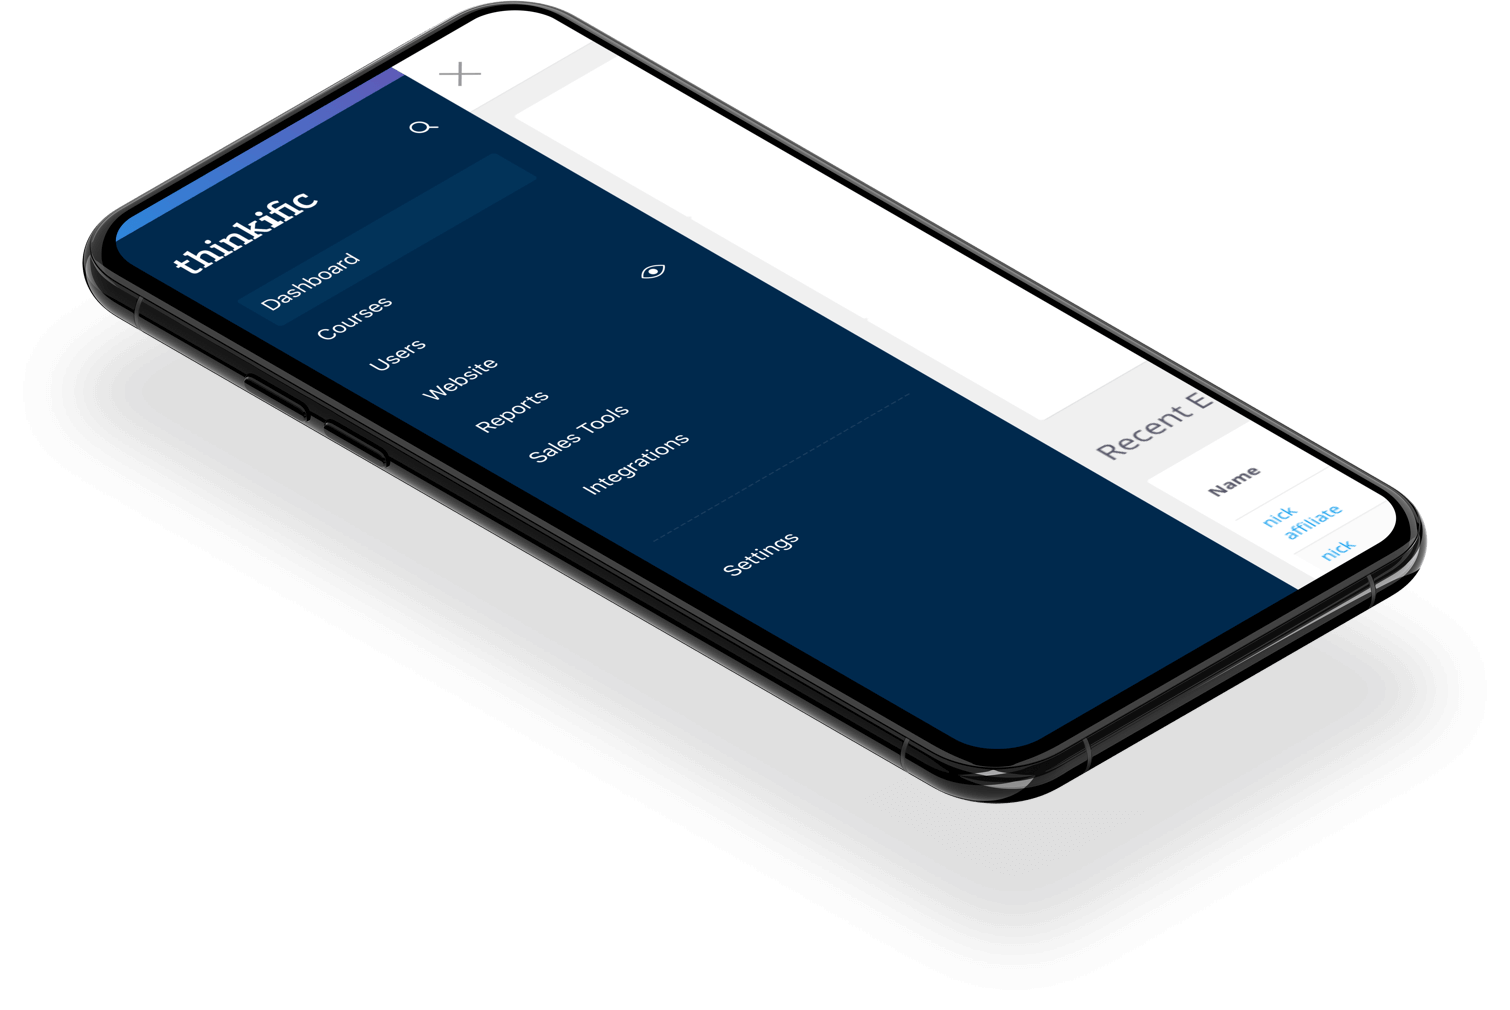 Thinkific mobile app navigation screen